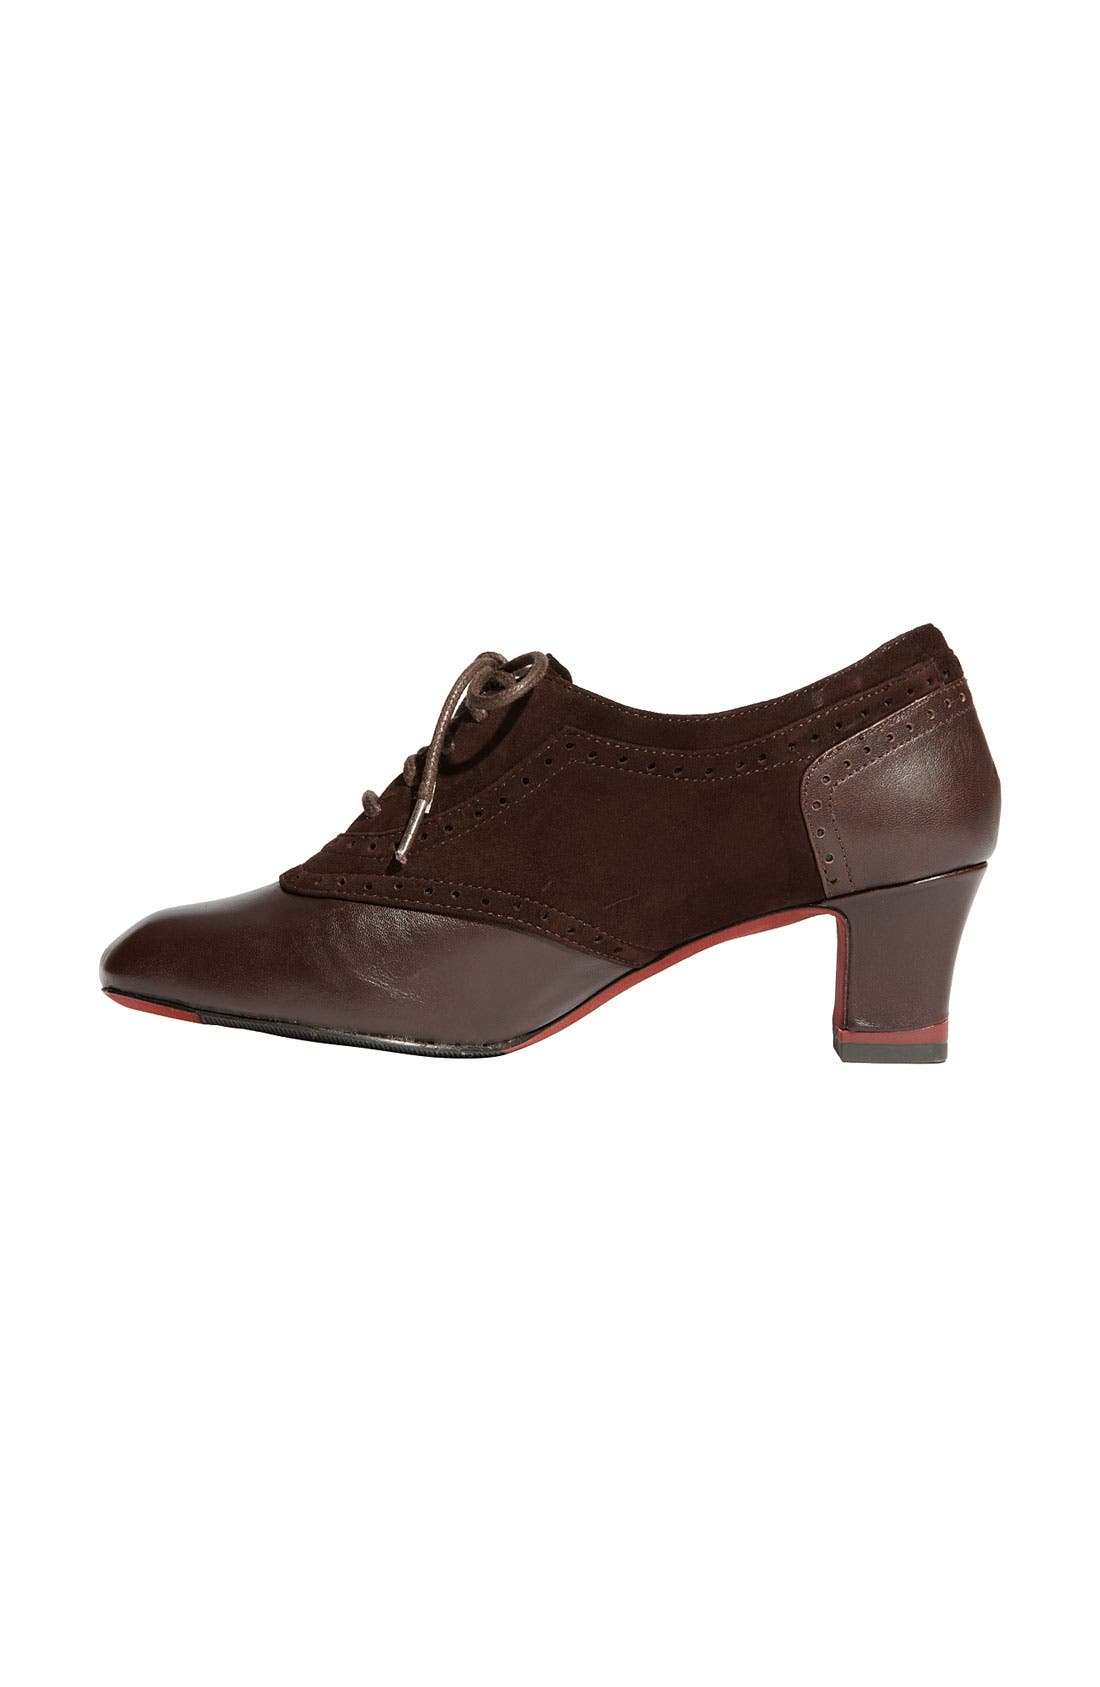 Alternate Image 2  - Oh! Shoes 'Minerva' Oxford Pump